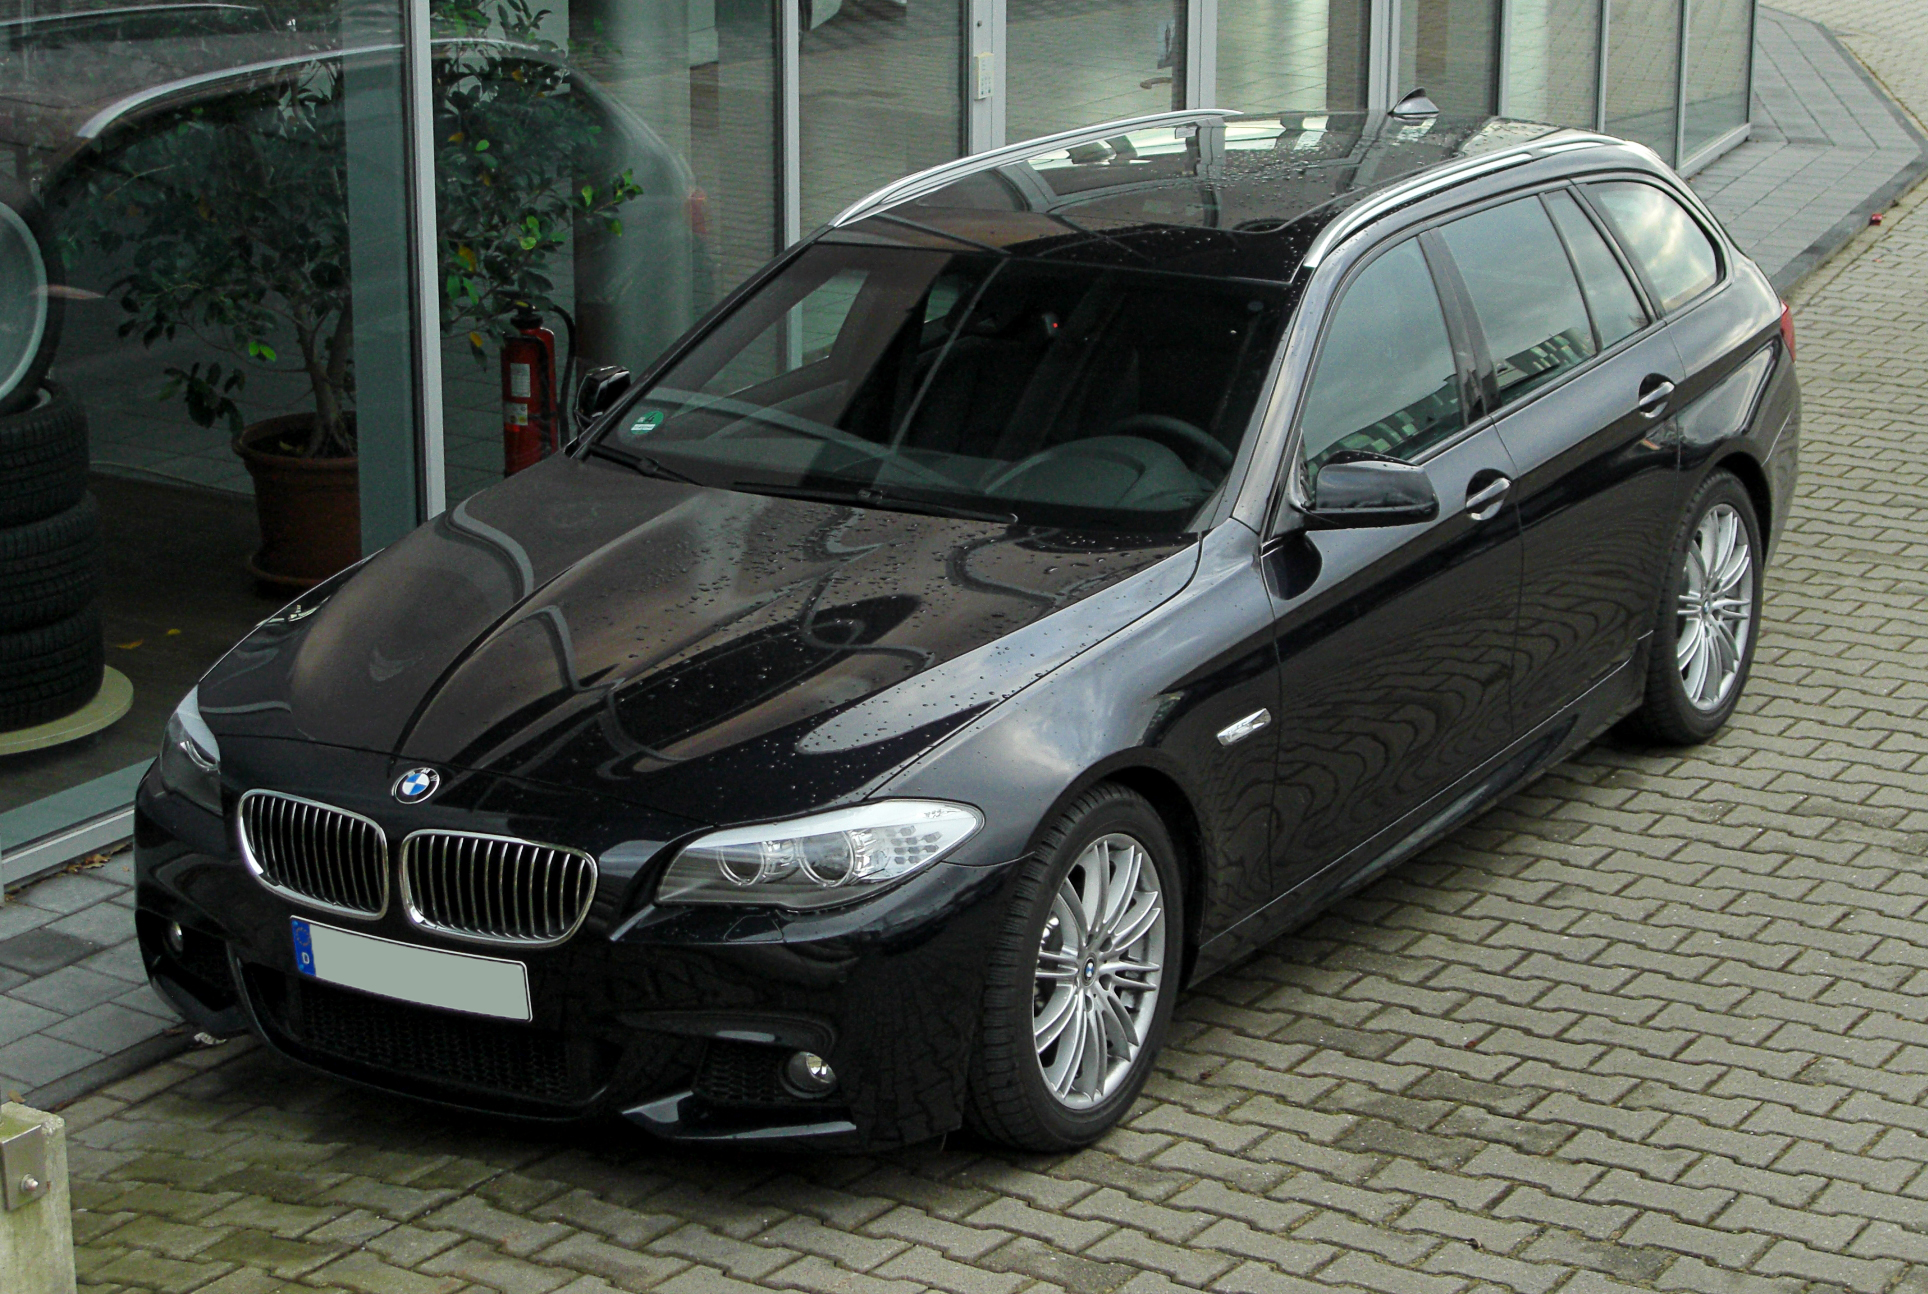 File:bmw 520d Touring